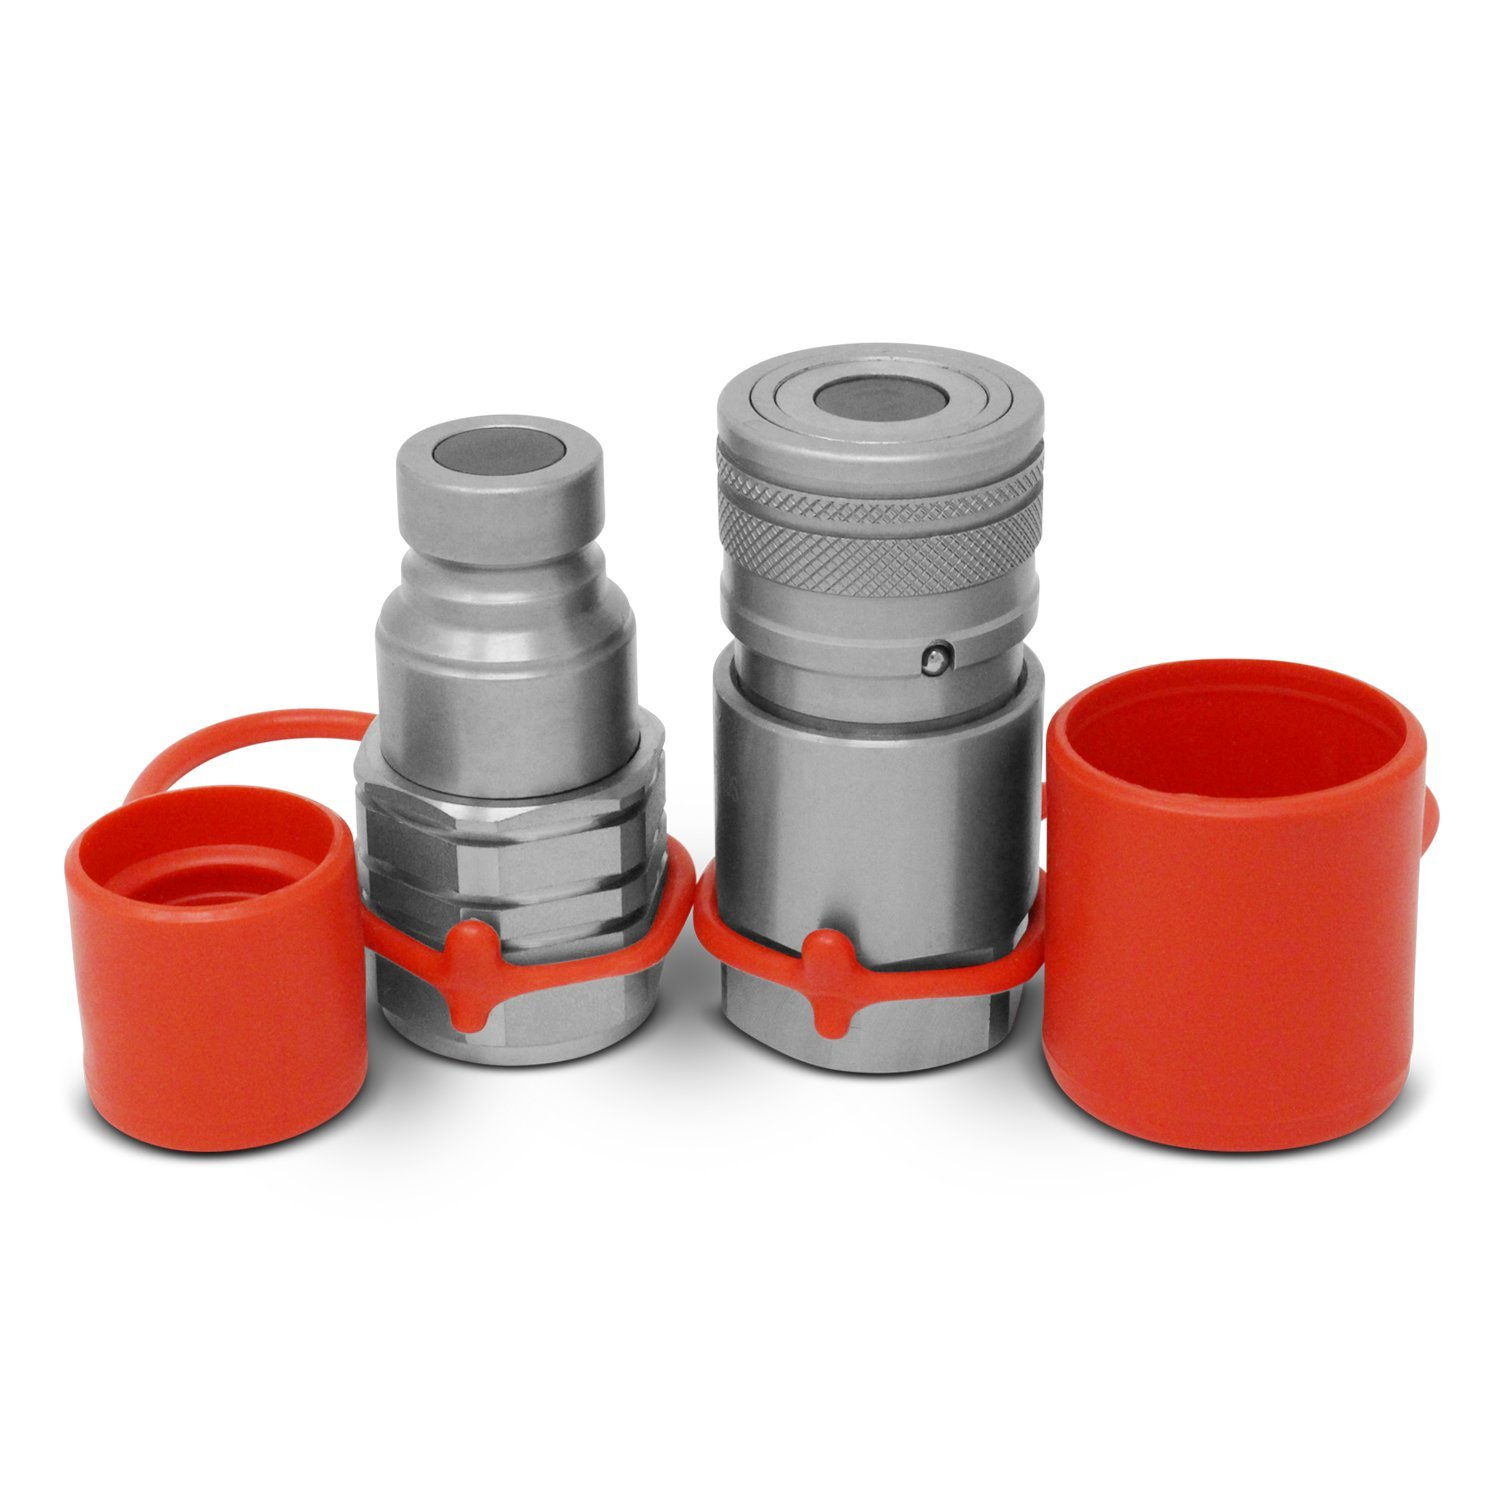 1/2'' Skid Steer Bobcat Flat Face Hydraulic Quick Connect Couplers / Couplings Set w/ Dust Caps by Summit Hydraulics (Image #1)